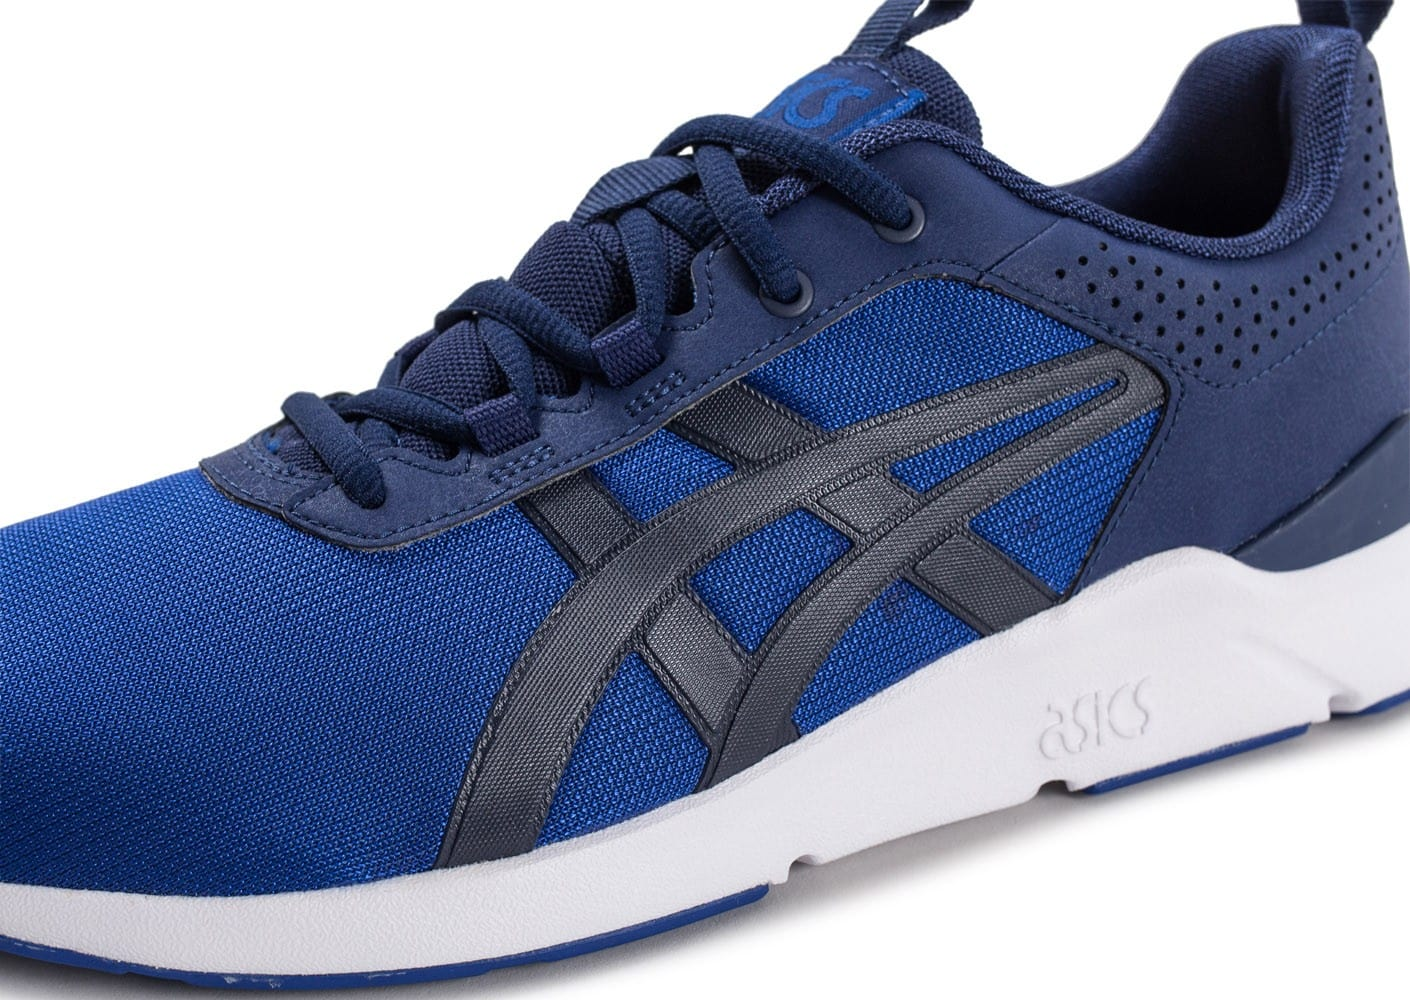 soldes asics gel lyte v bleue chaussures homme chausport. Black Bedroom Furniture Sets. Home Design Ideas